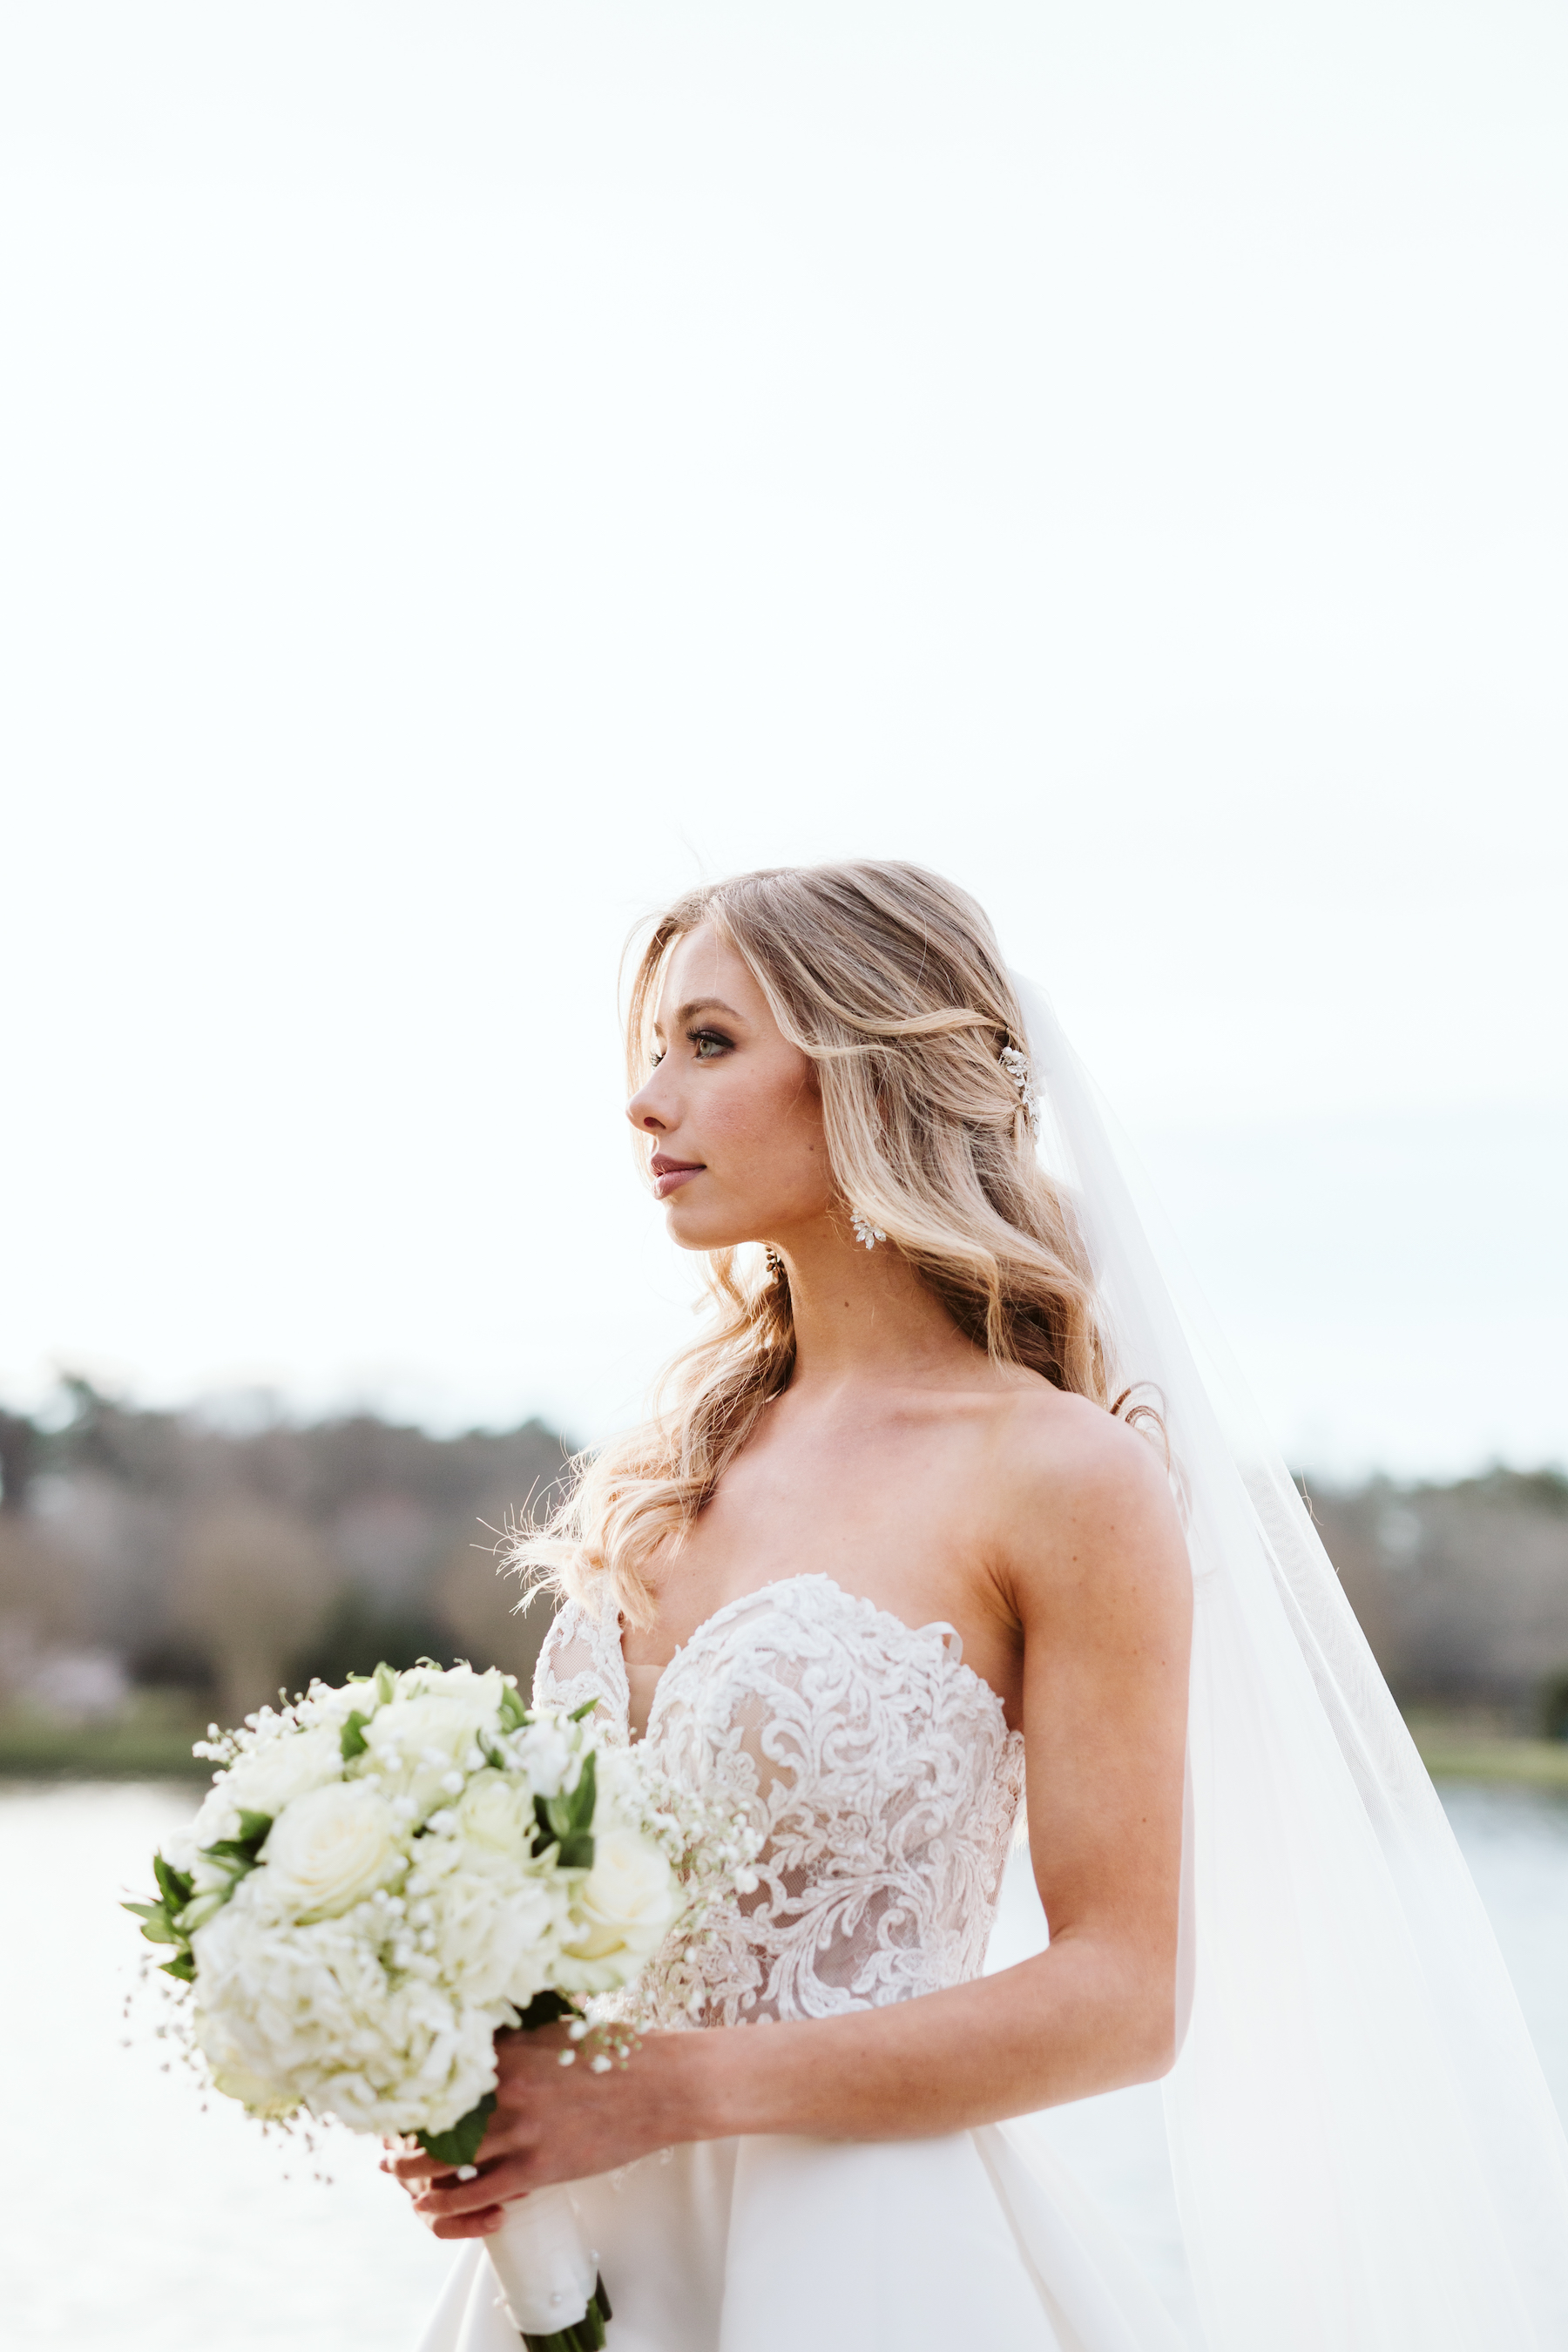 furman-university-bridals-paige-215.JPG